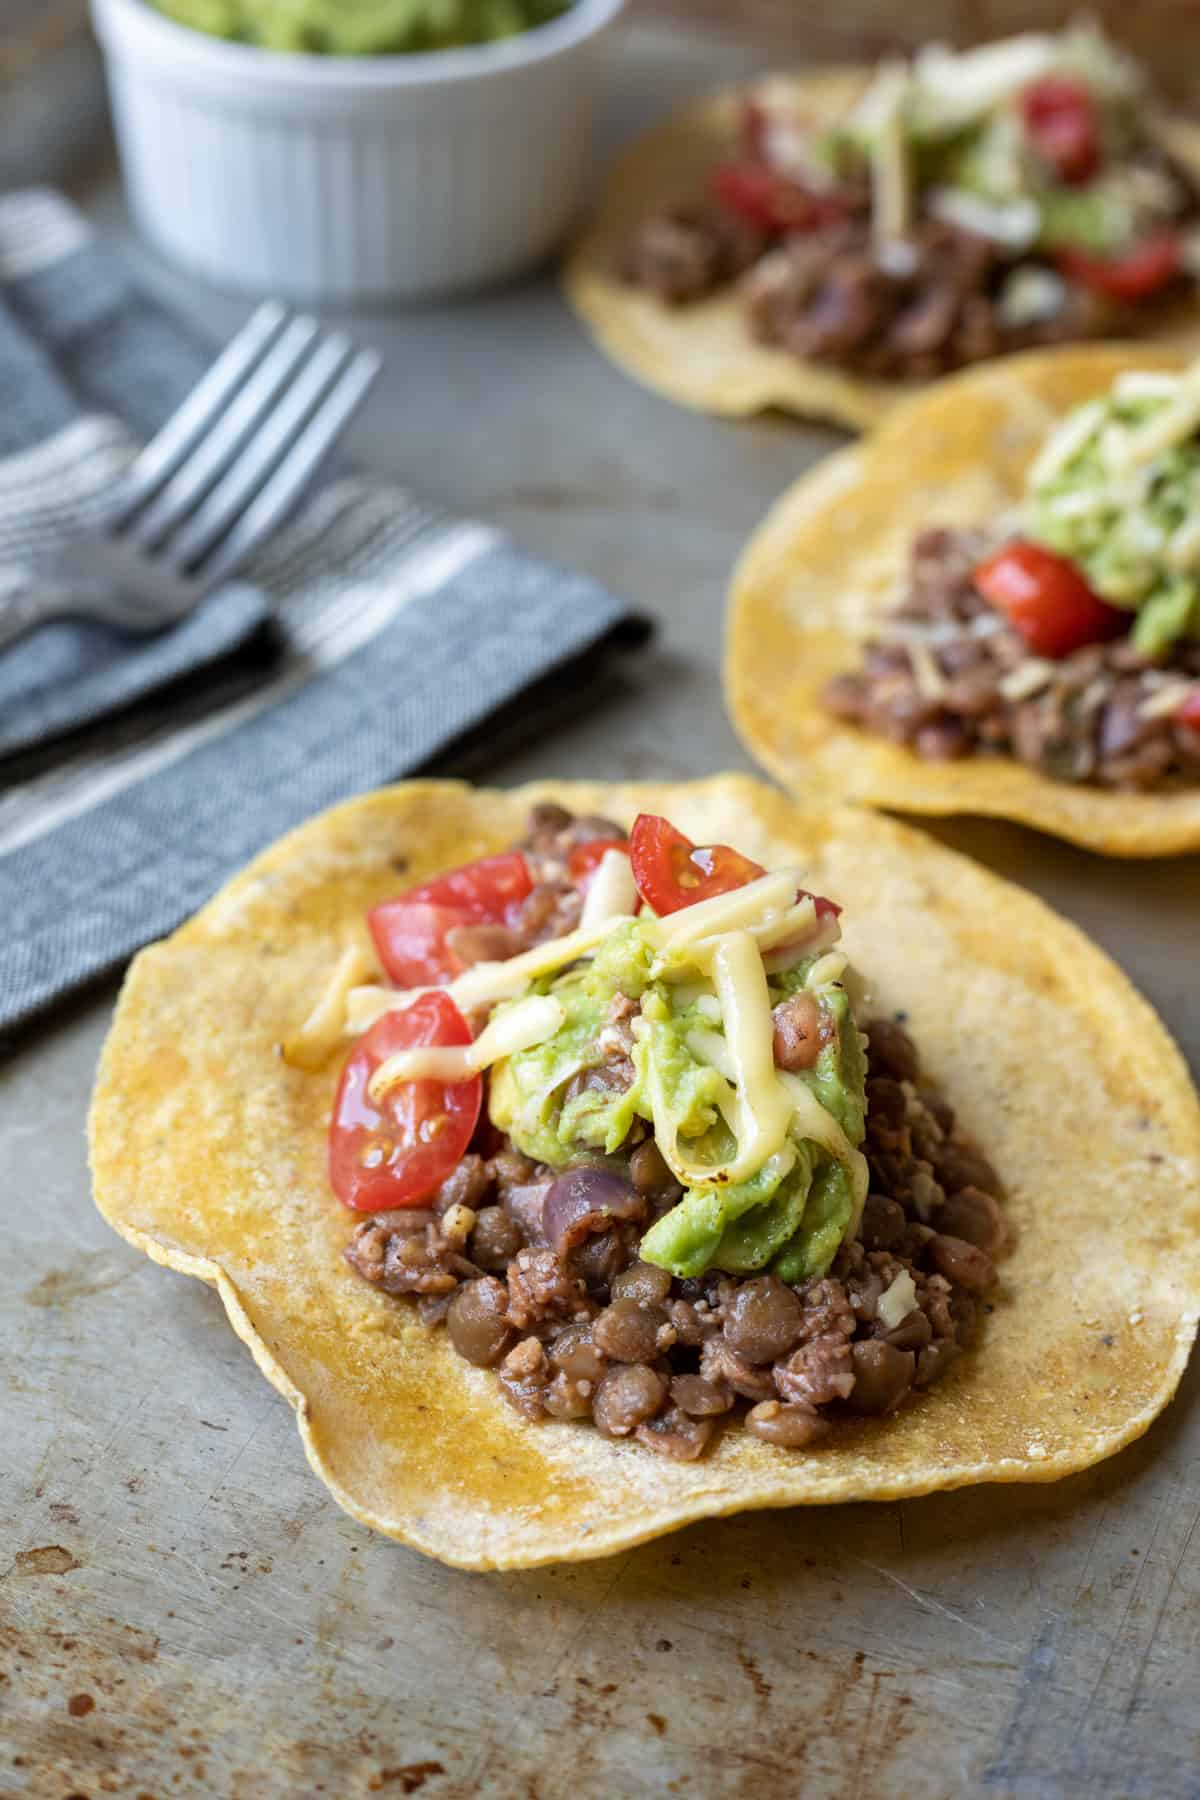 three tacos with lentils, guacamole, cheese, and tomatoes.